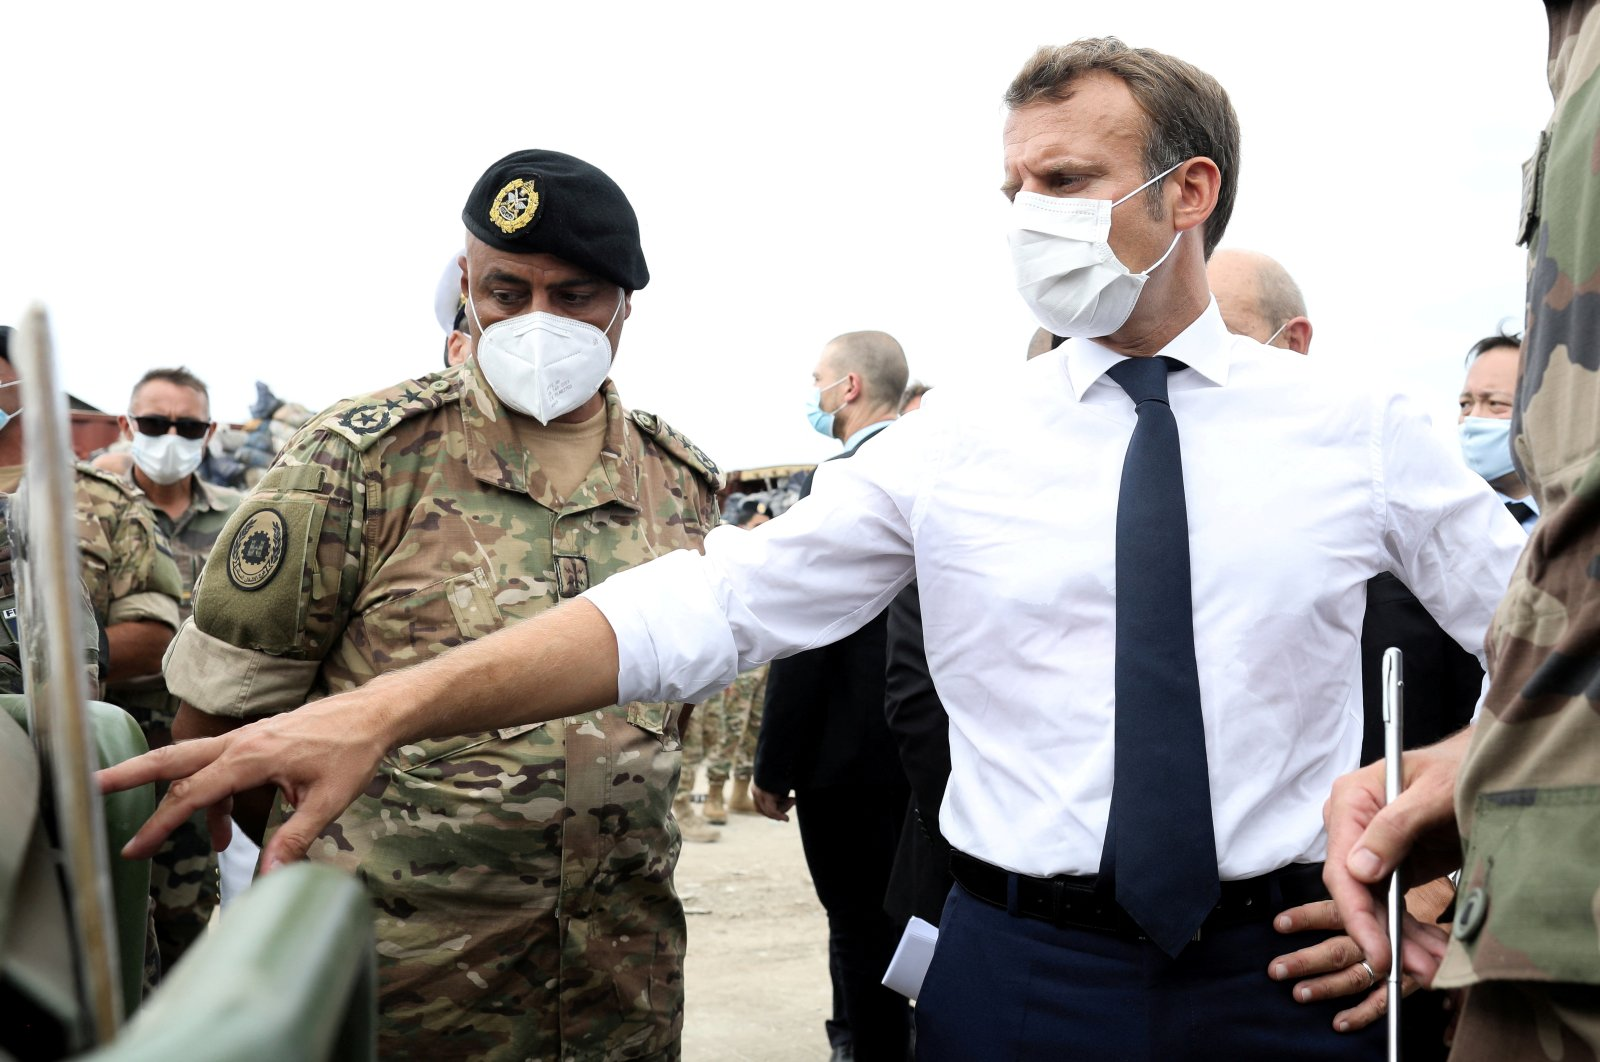 French President Emmanuel Macron meets with members of the Lebanese military, Beirut, Lebanon, Sept. 1, 2020. (Reuters Photo)